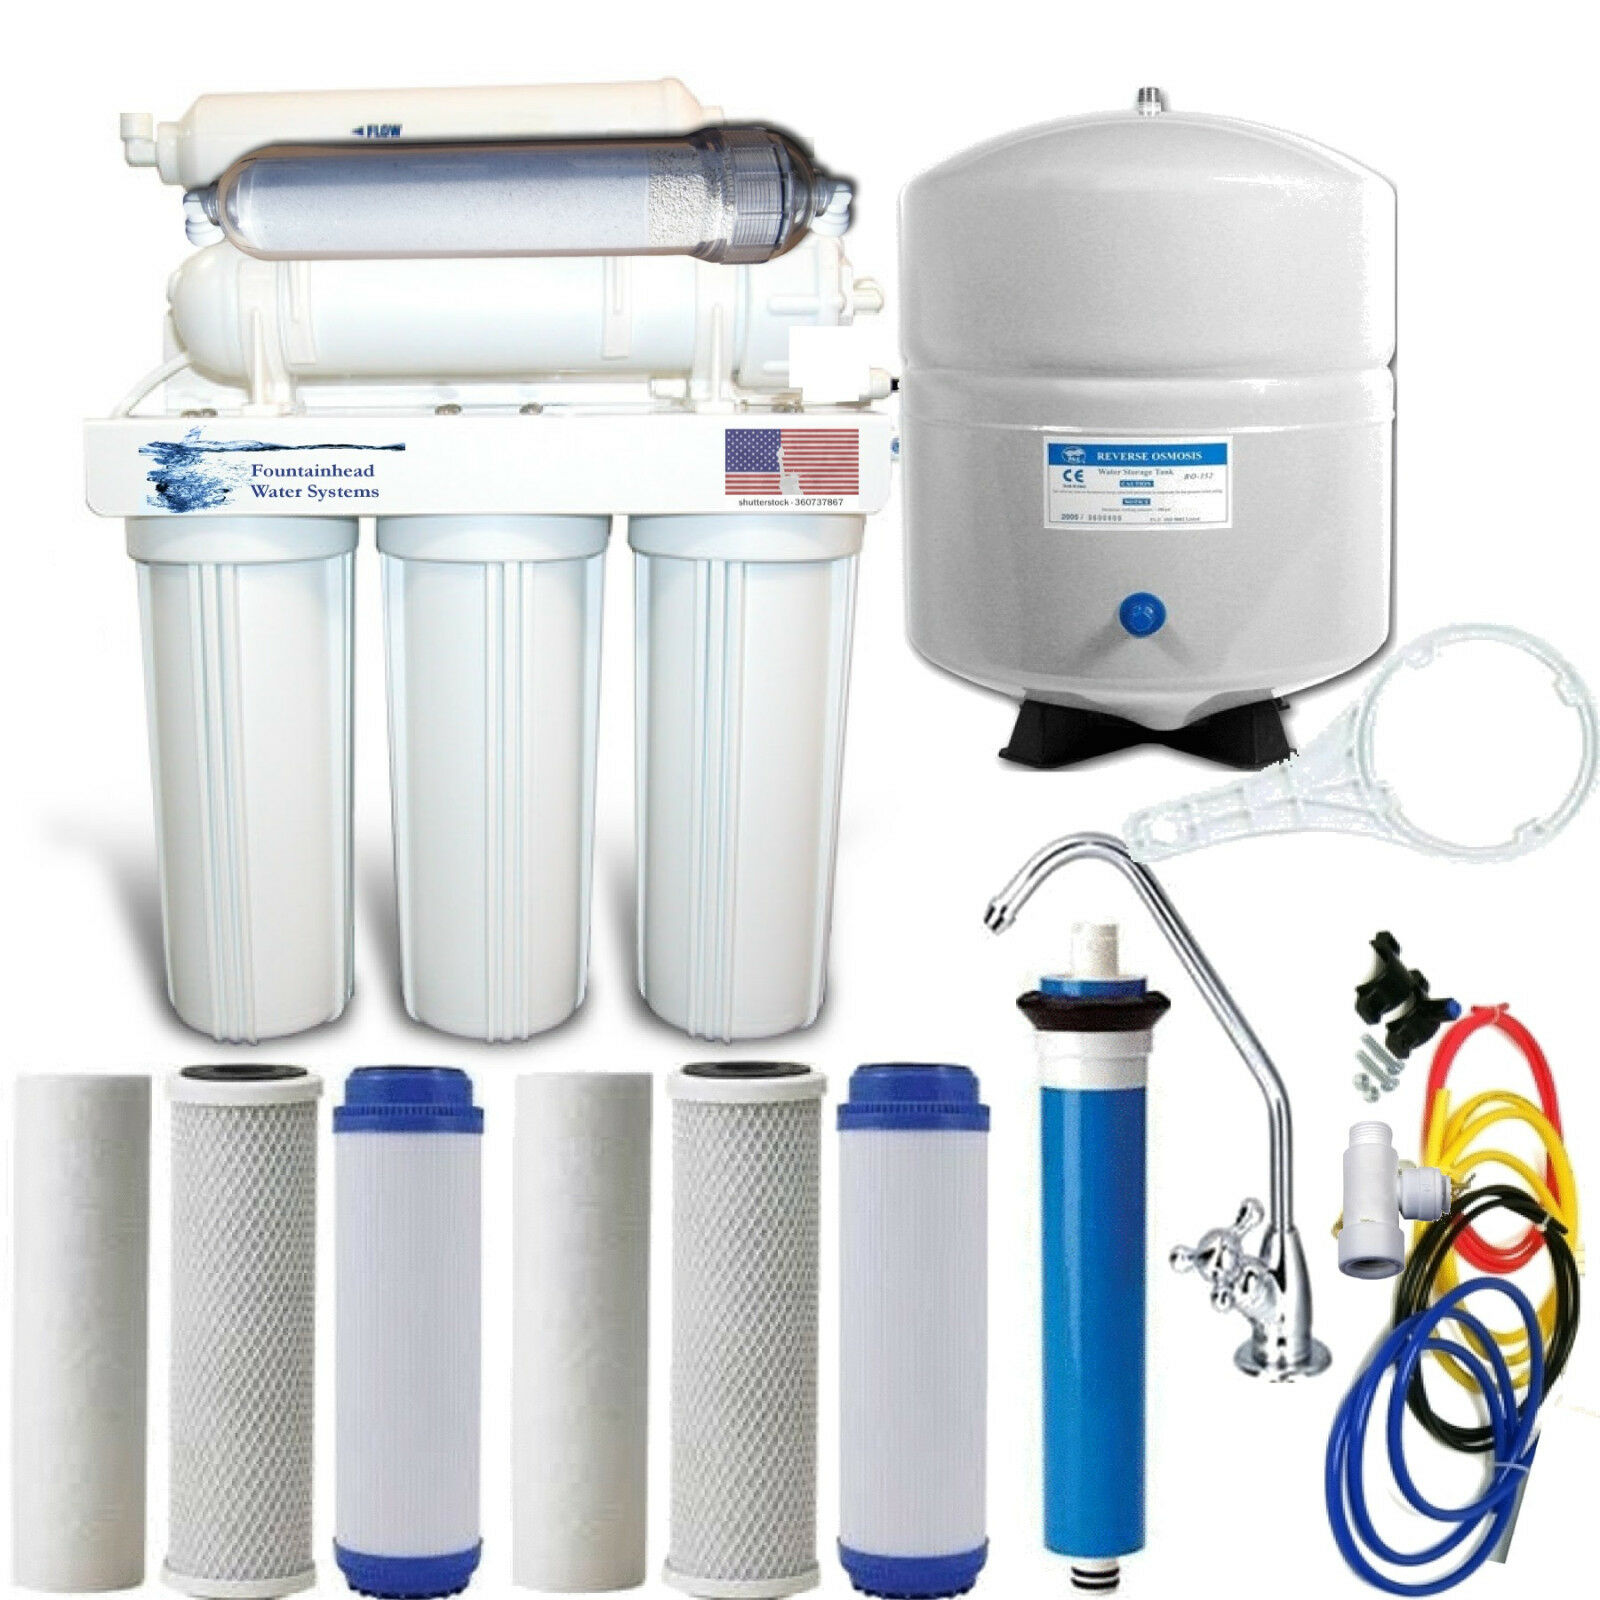 ALKALINE REMINERALIZER REVERSE OSMOSIS SYSTEM 100G EX. FILTERS CHOICE OF FAUCET